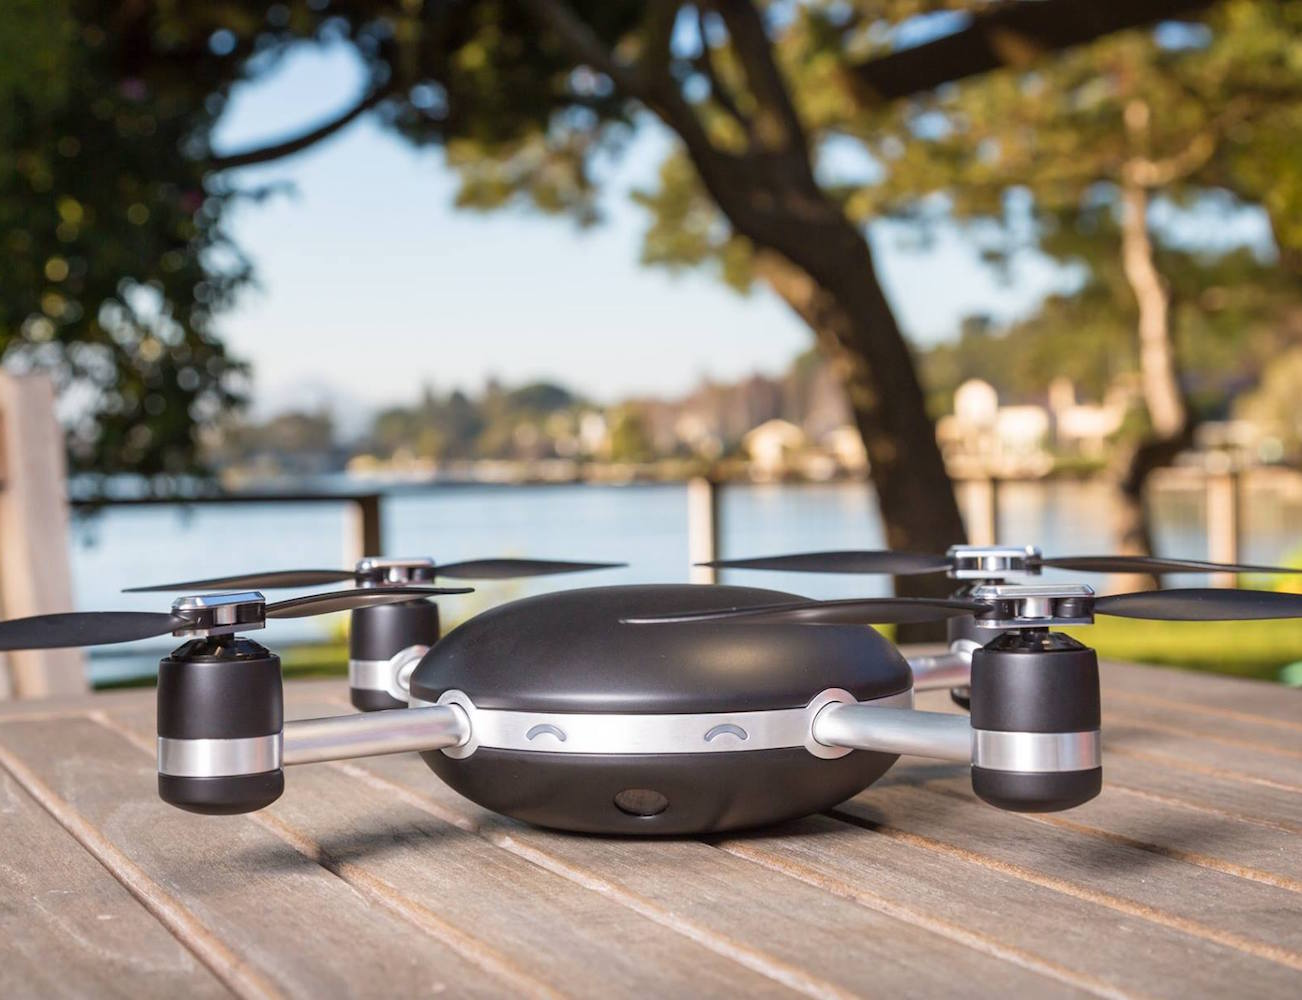 lily-a-camera-drone-that-follows-you-01